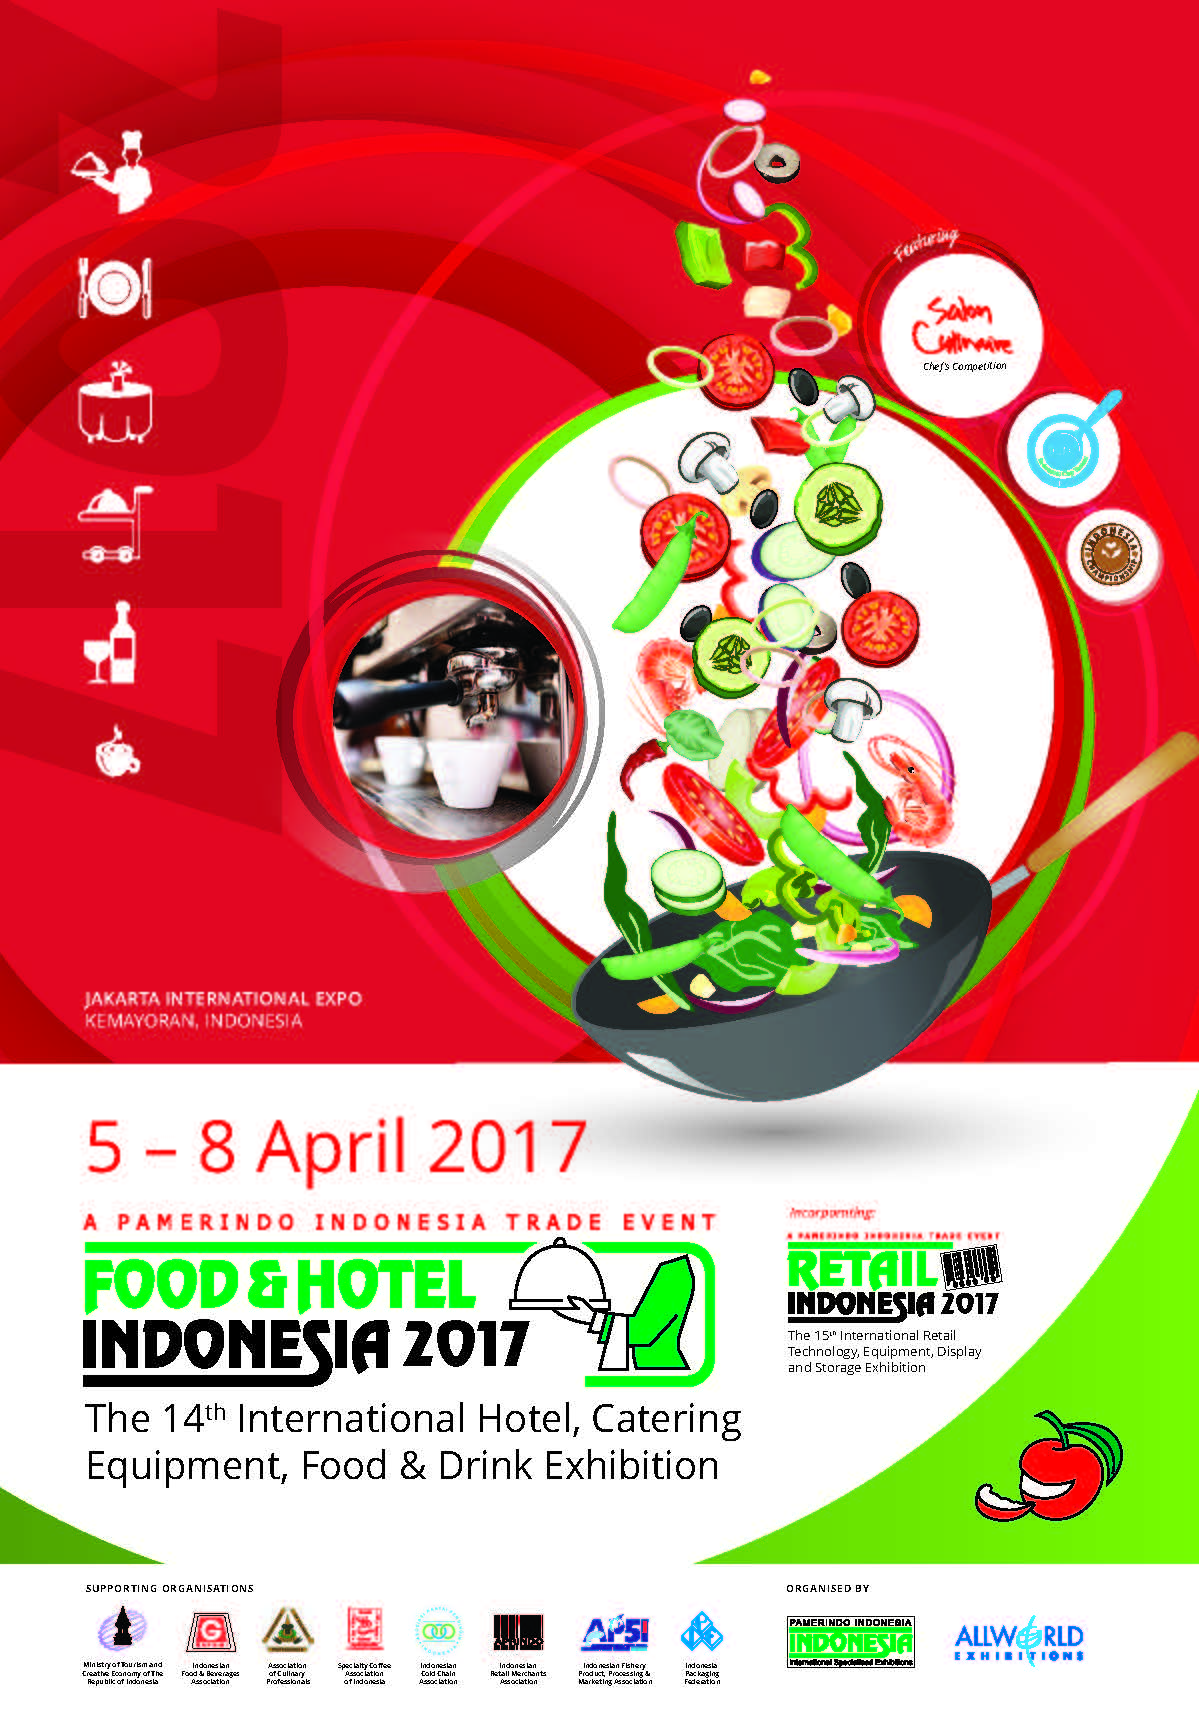 Food & Hotel Indonesia - Jakarta International Expo (JIExpo), 5 - 8 April 2017